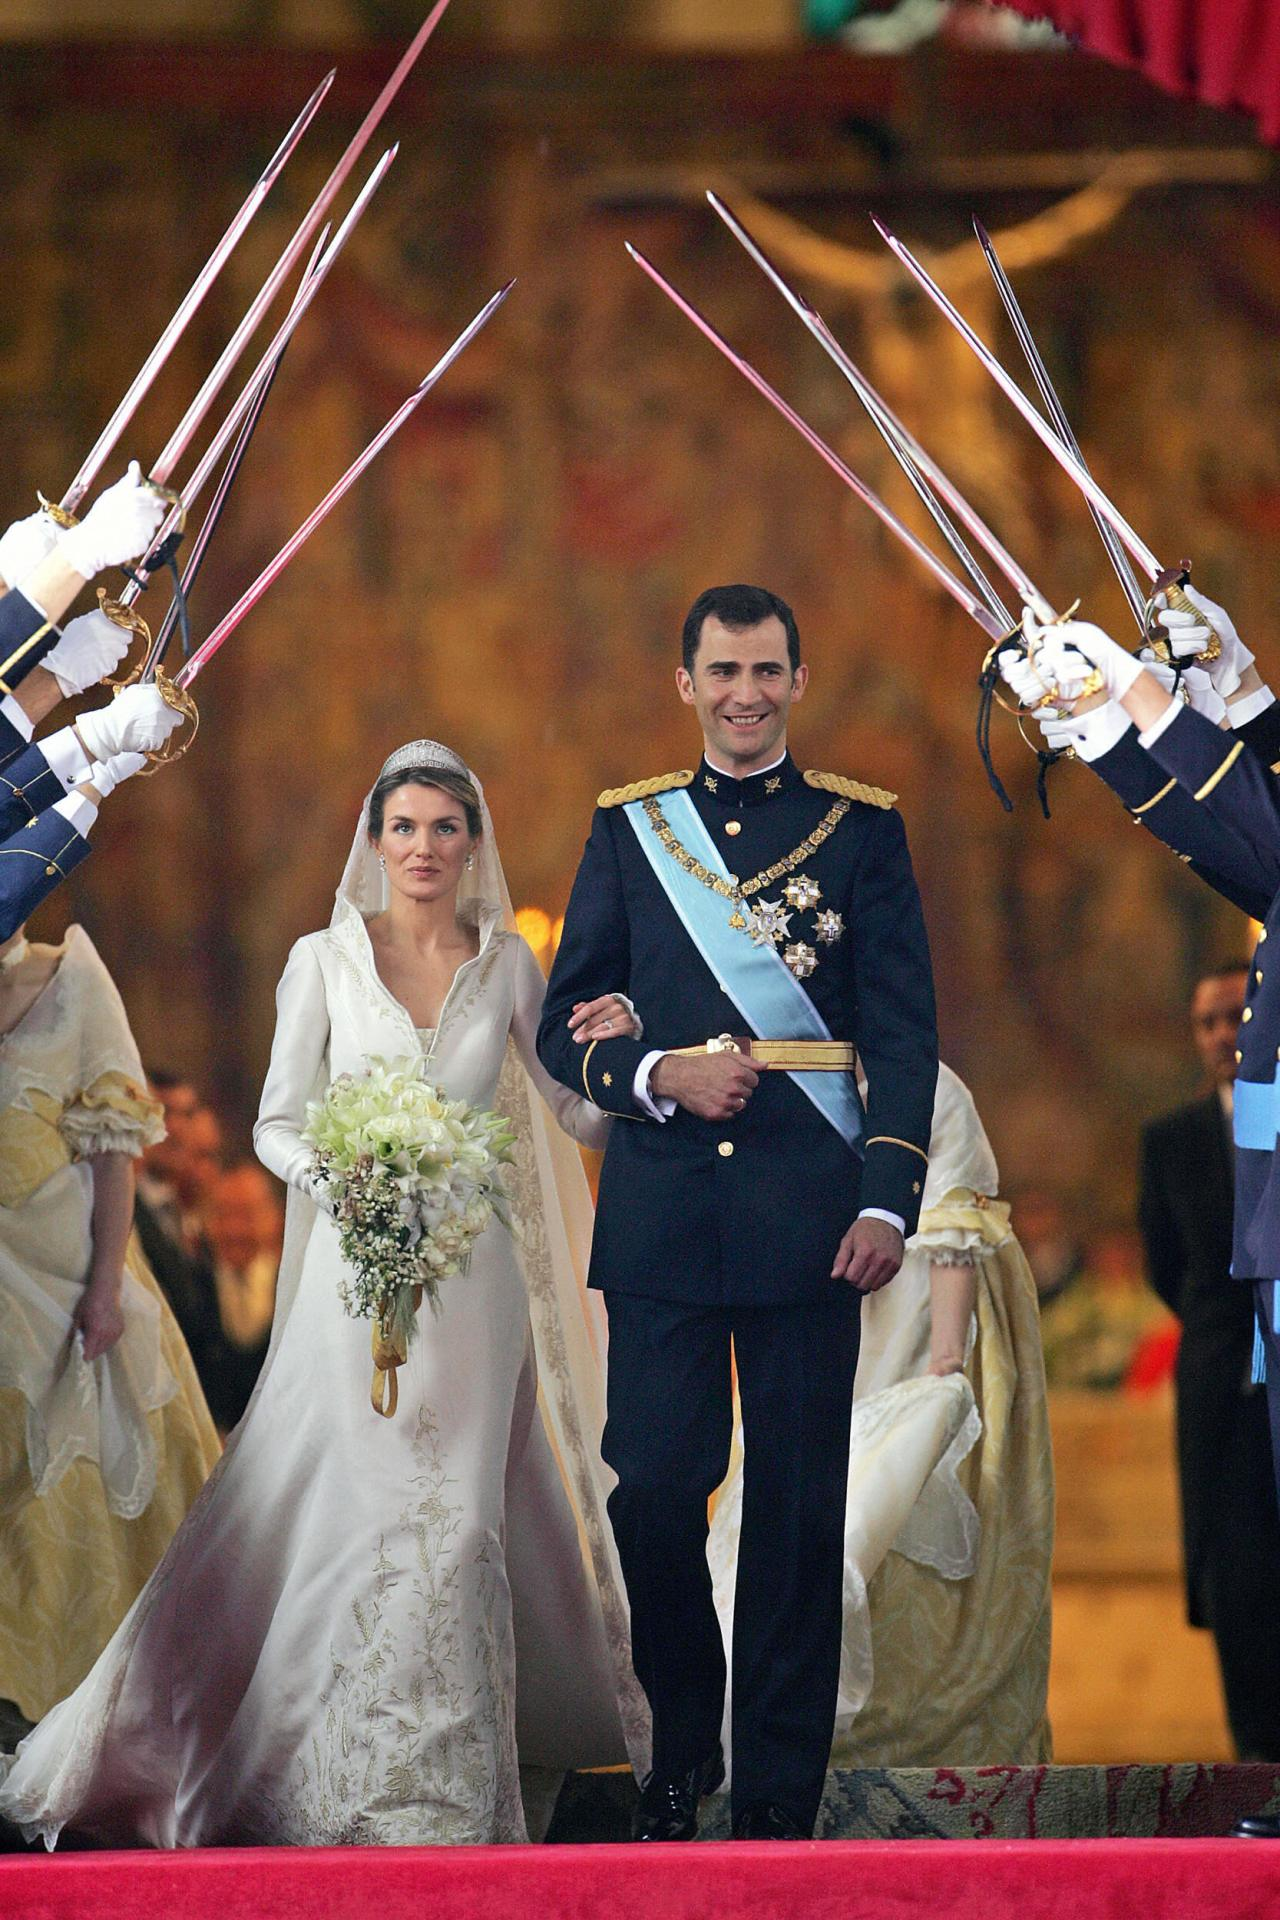 Inside Prince Felipe and Letizia Ortiz Rocasolano's 2004 wedding